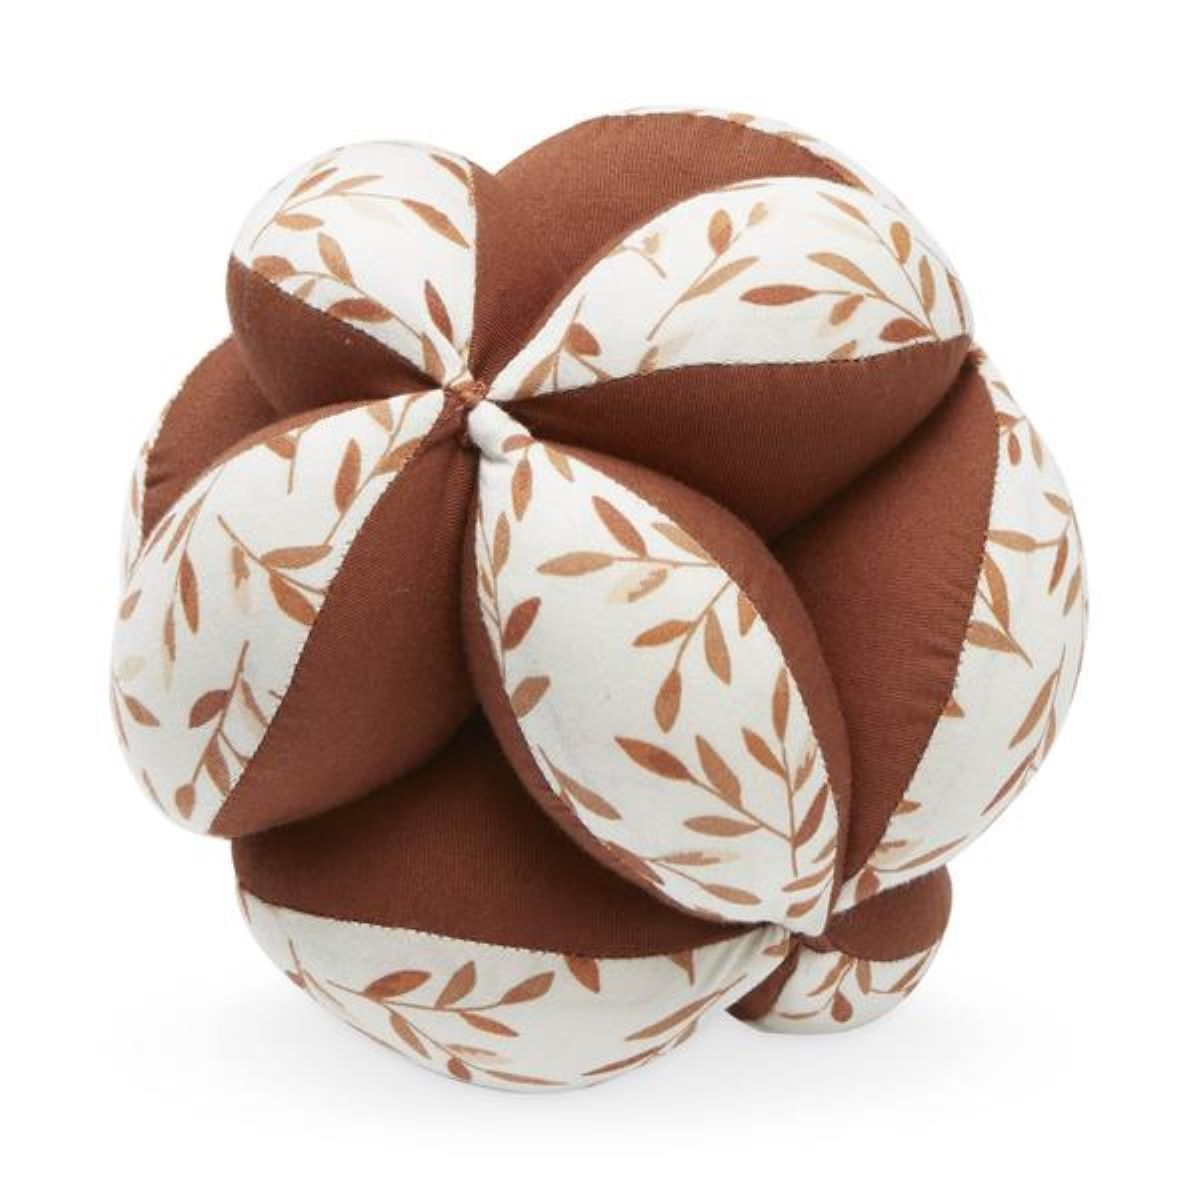 Cam Cam Baby Ball in Caramel Leaves